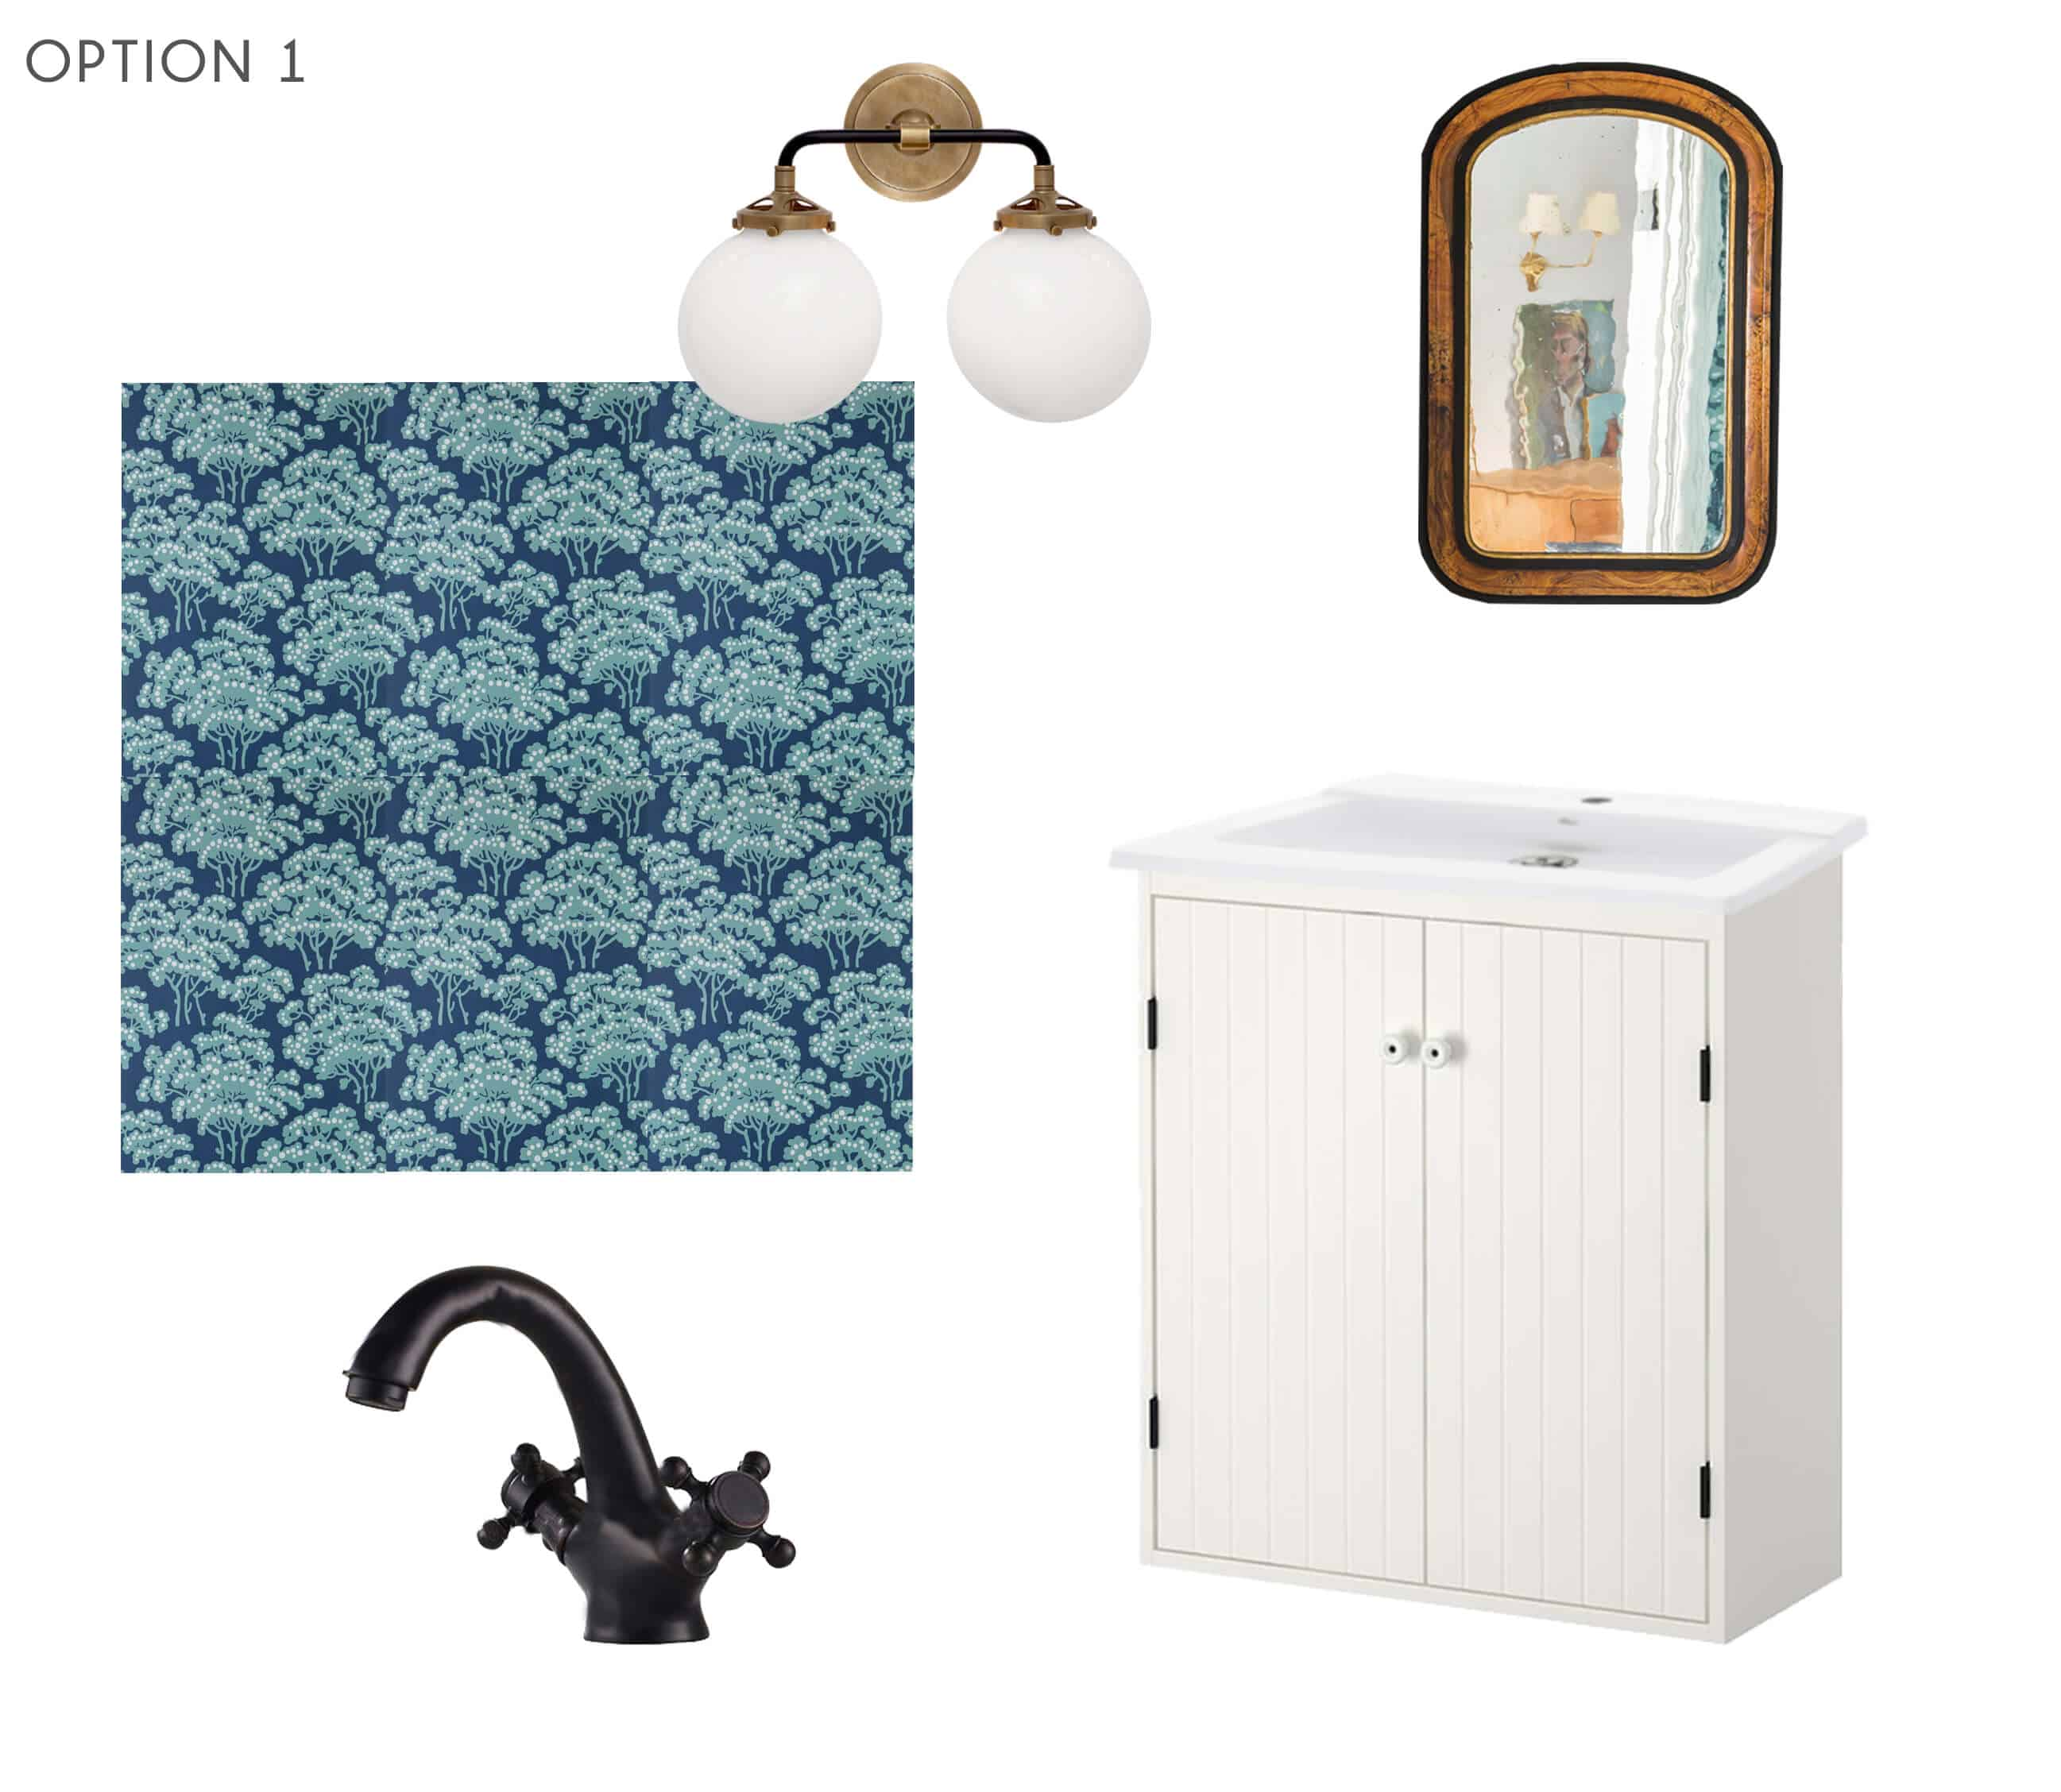 Emily Henderson_Ask the Audience_Powder Room_Vanity_Faucet_Combo_Option 1